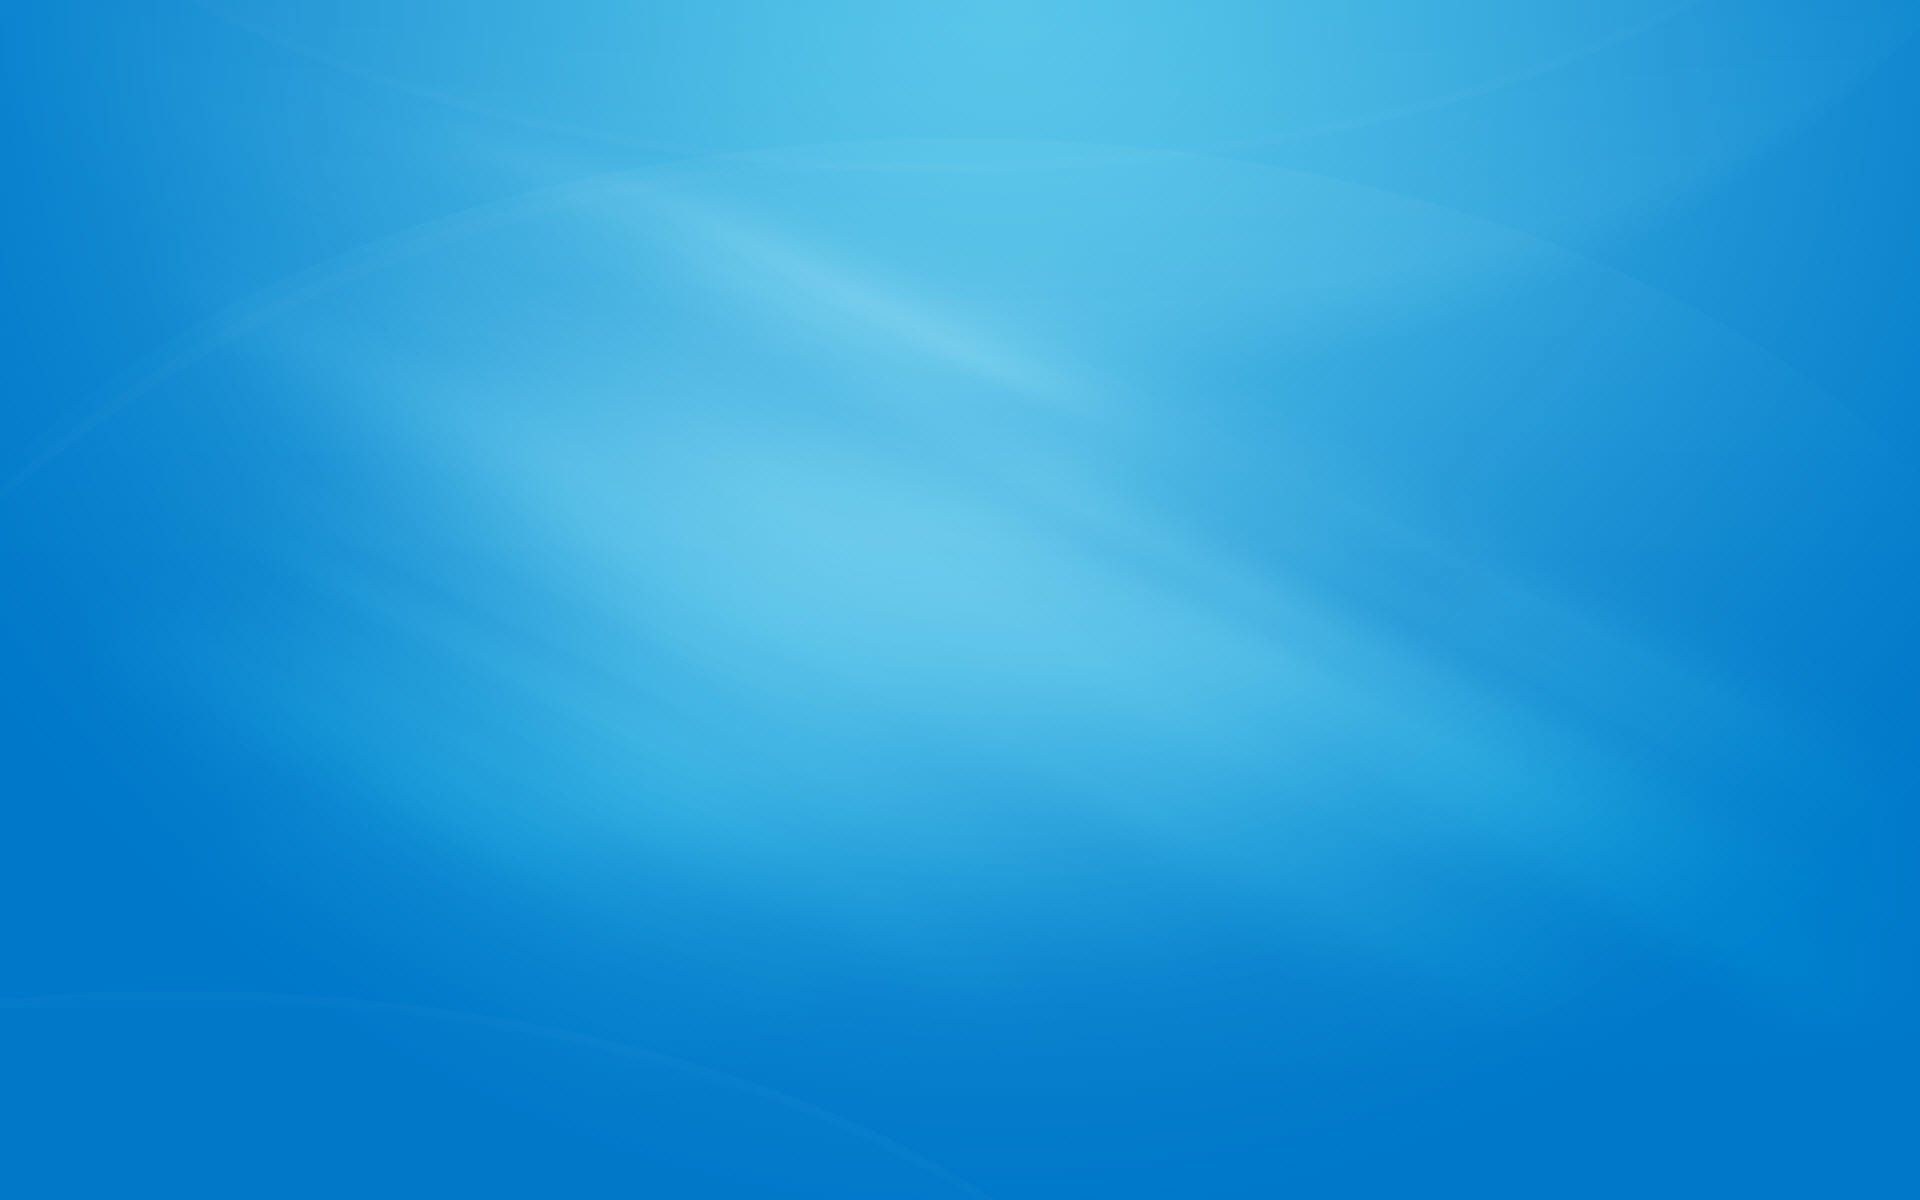 Simple blue wallpaper